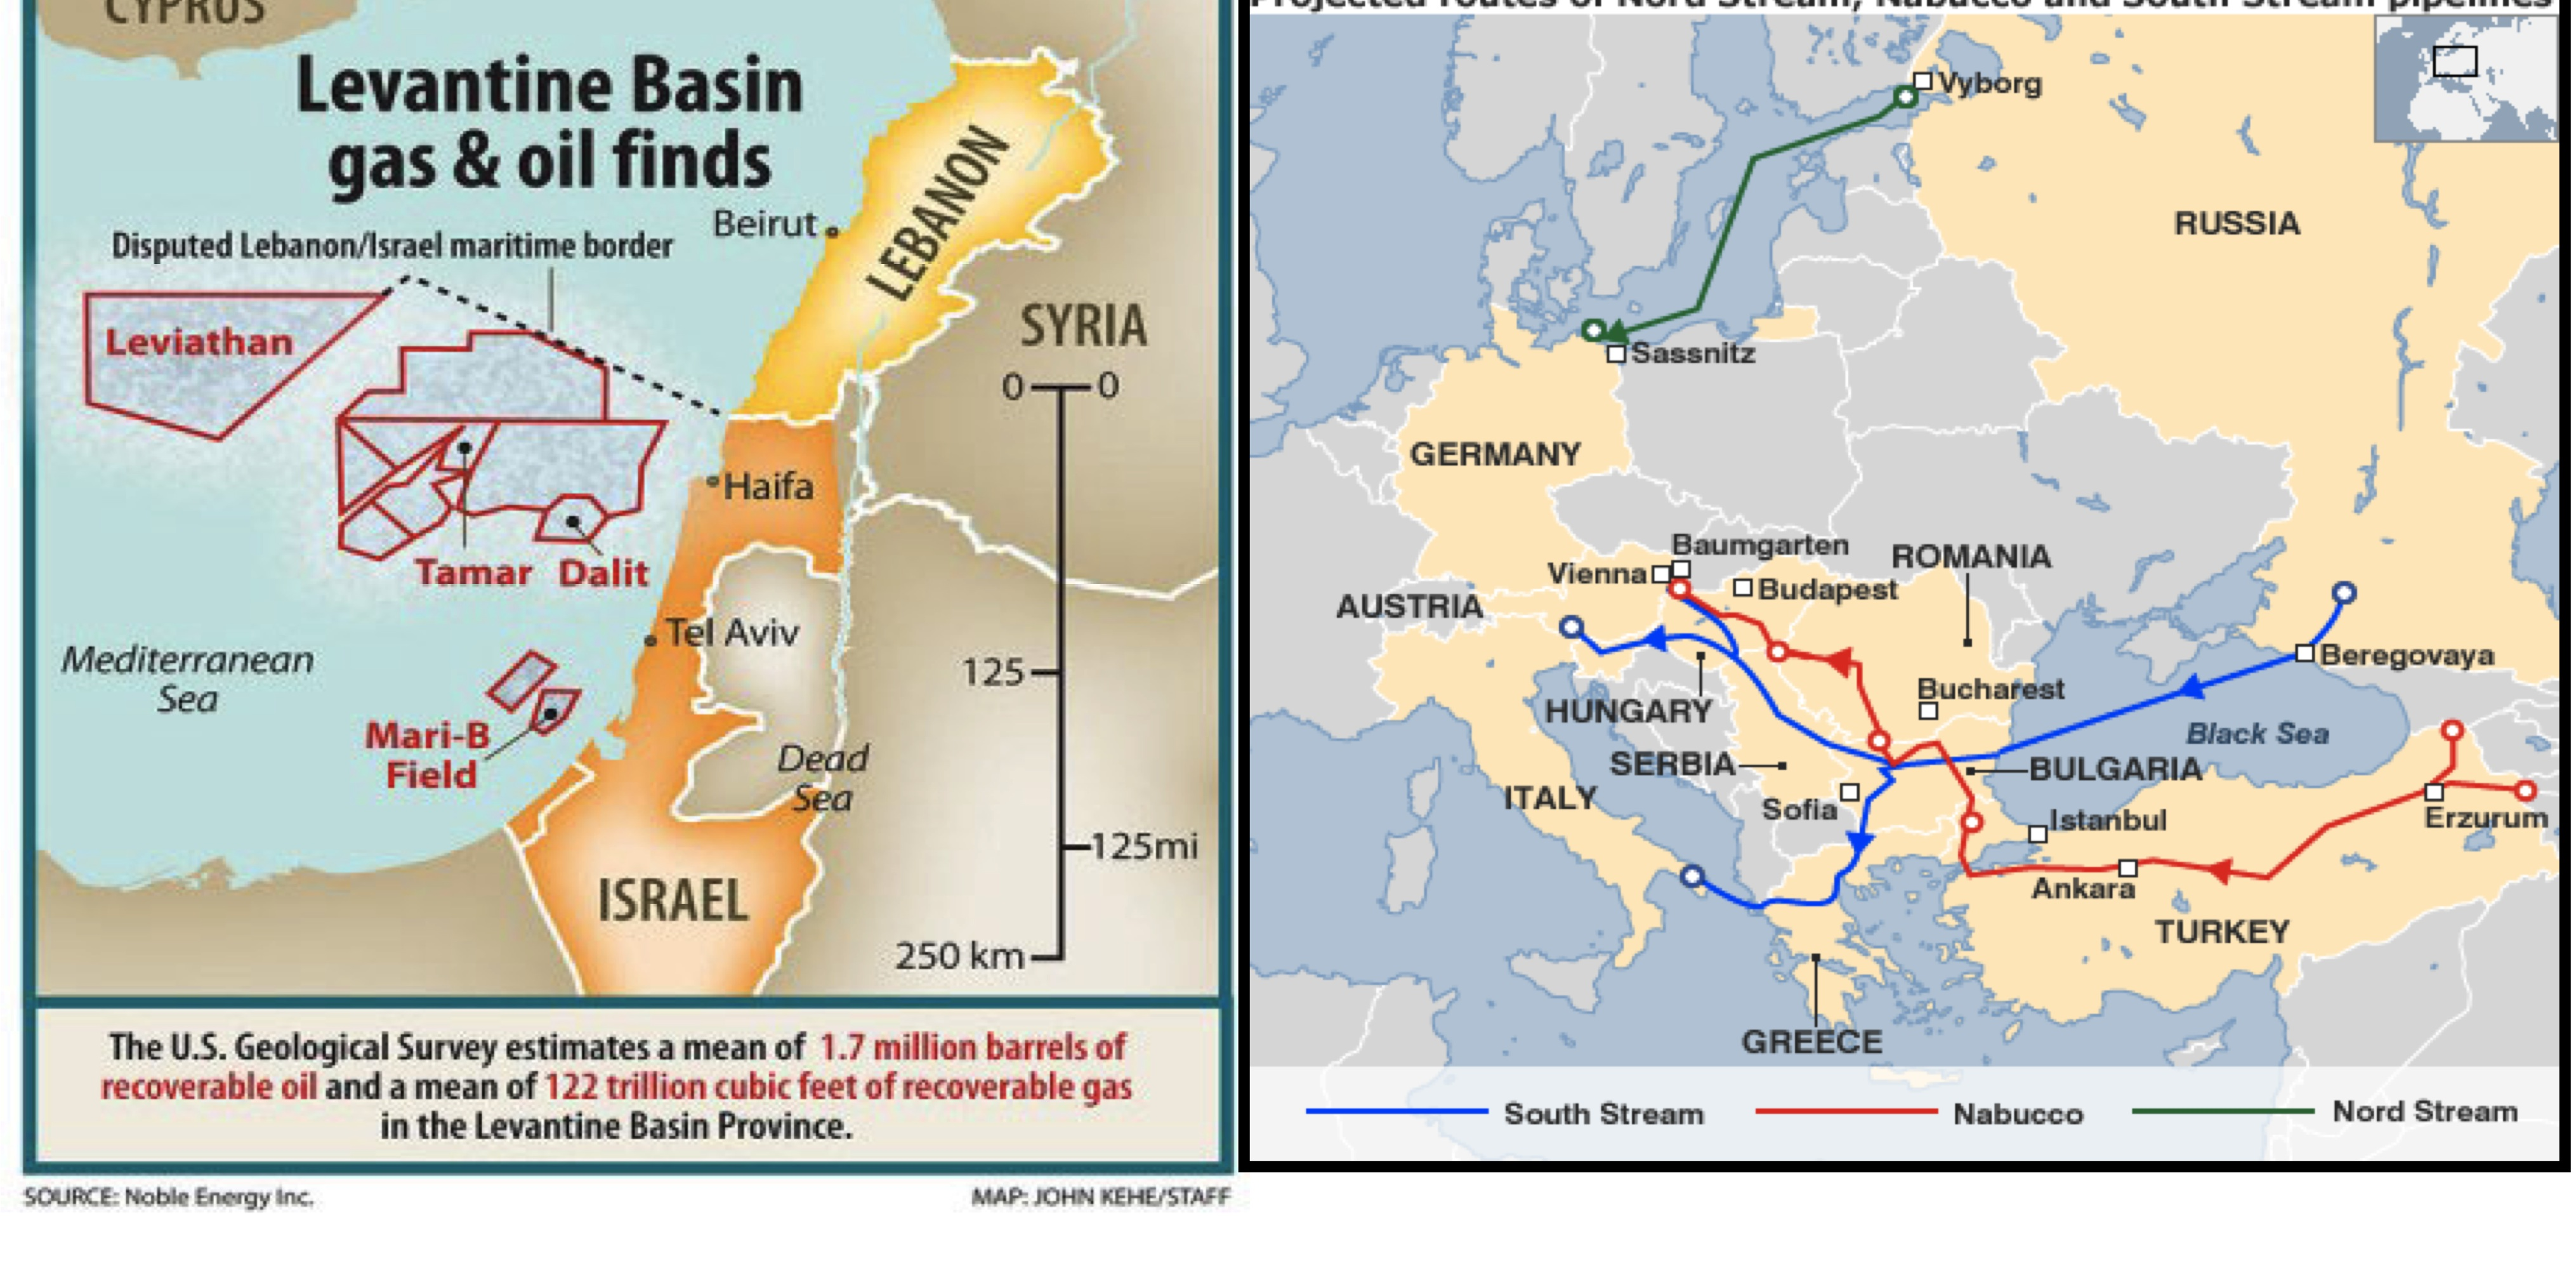 North and South Stream Pipelines